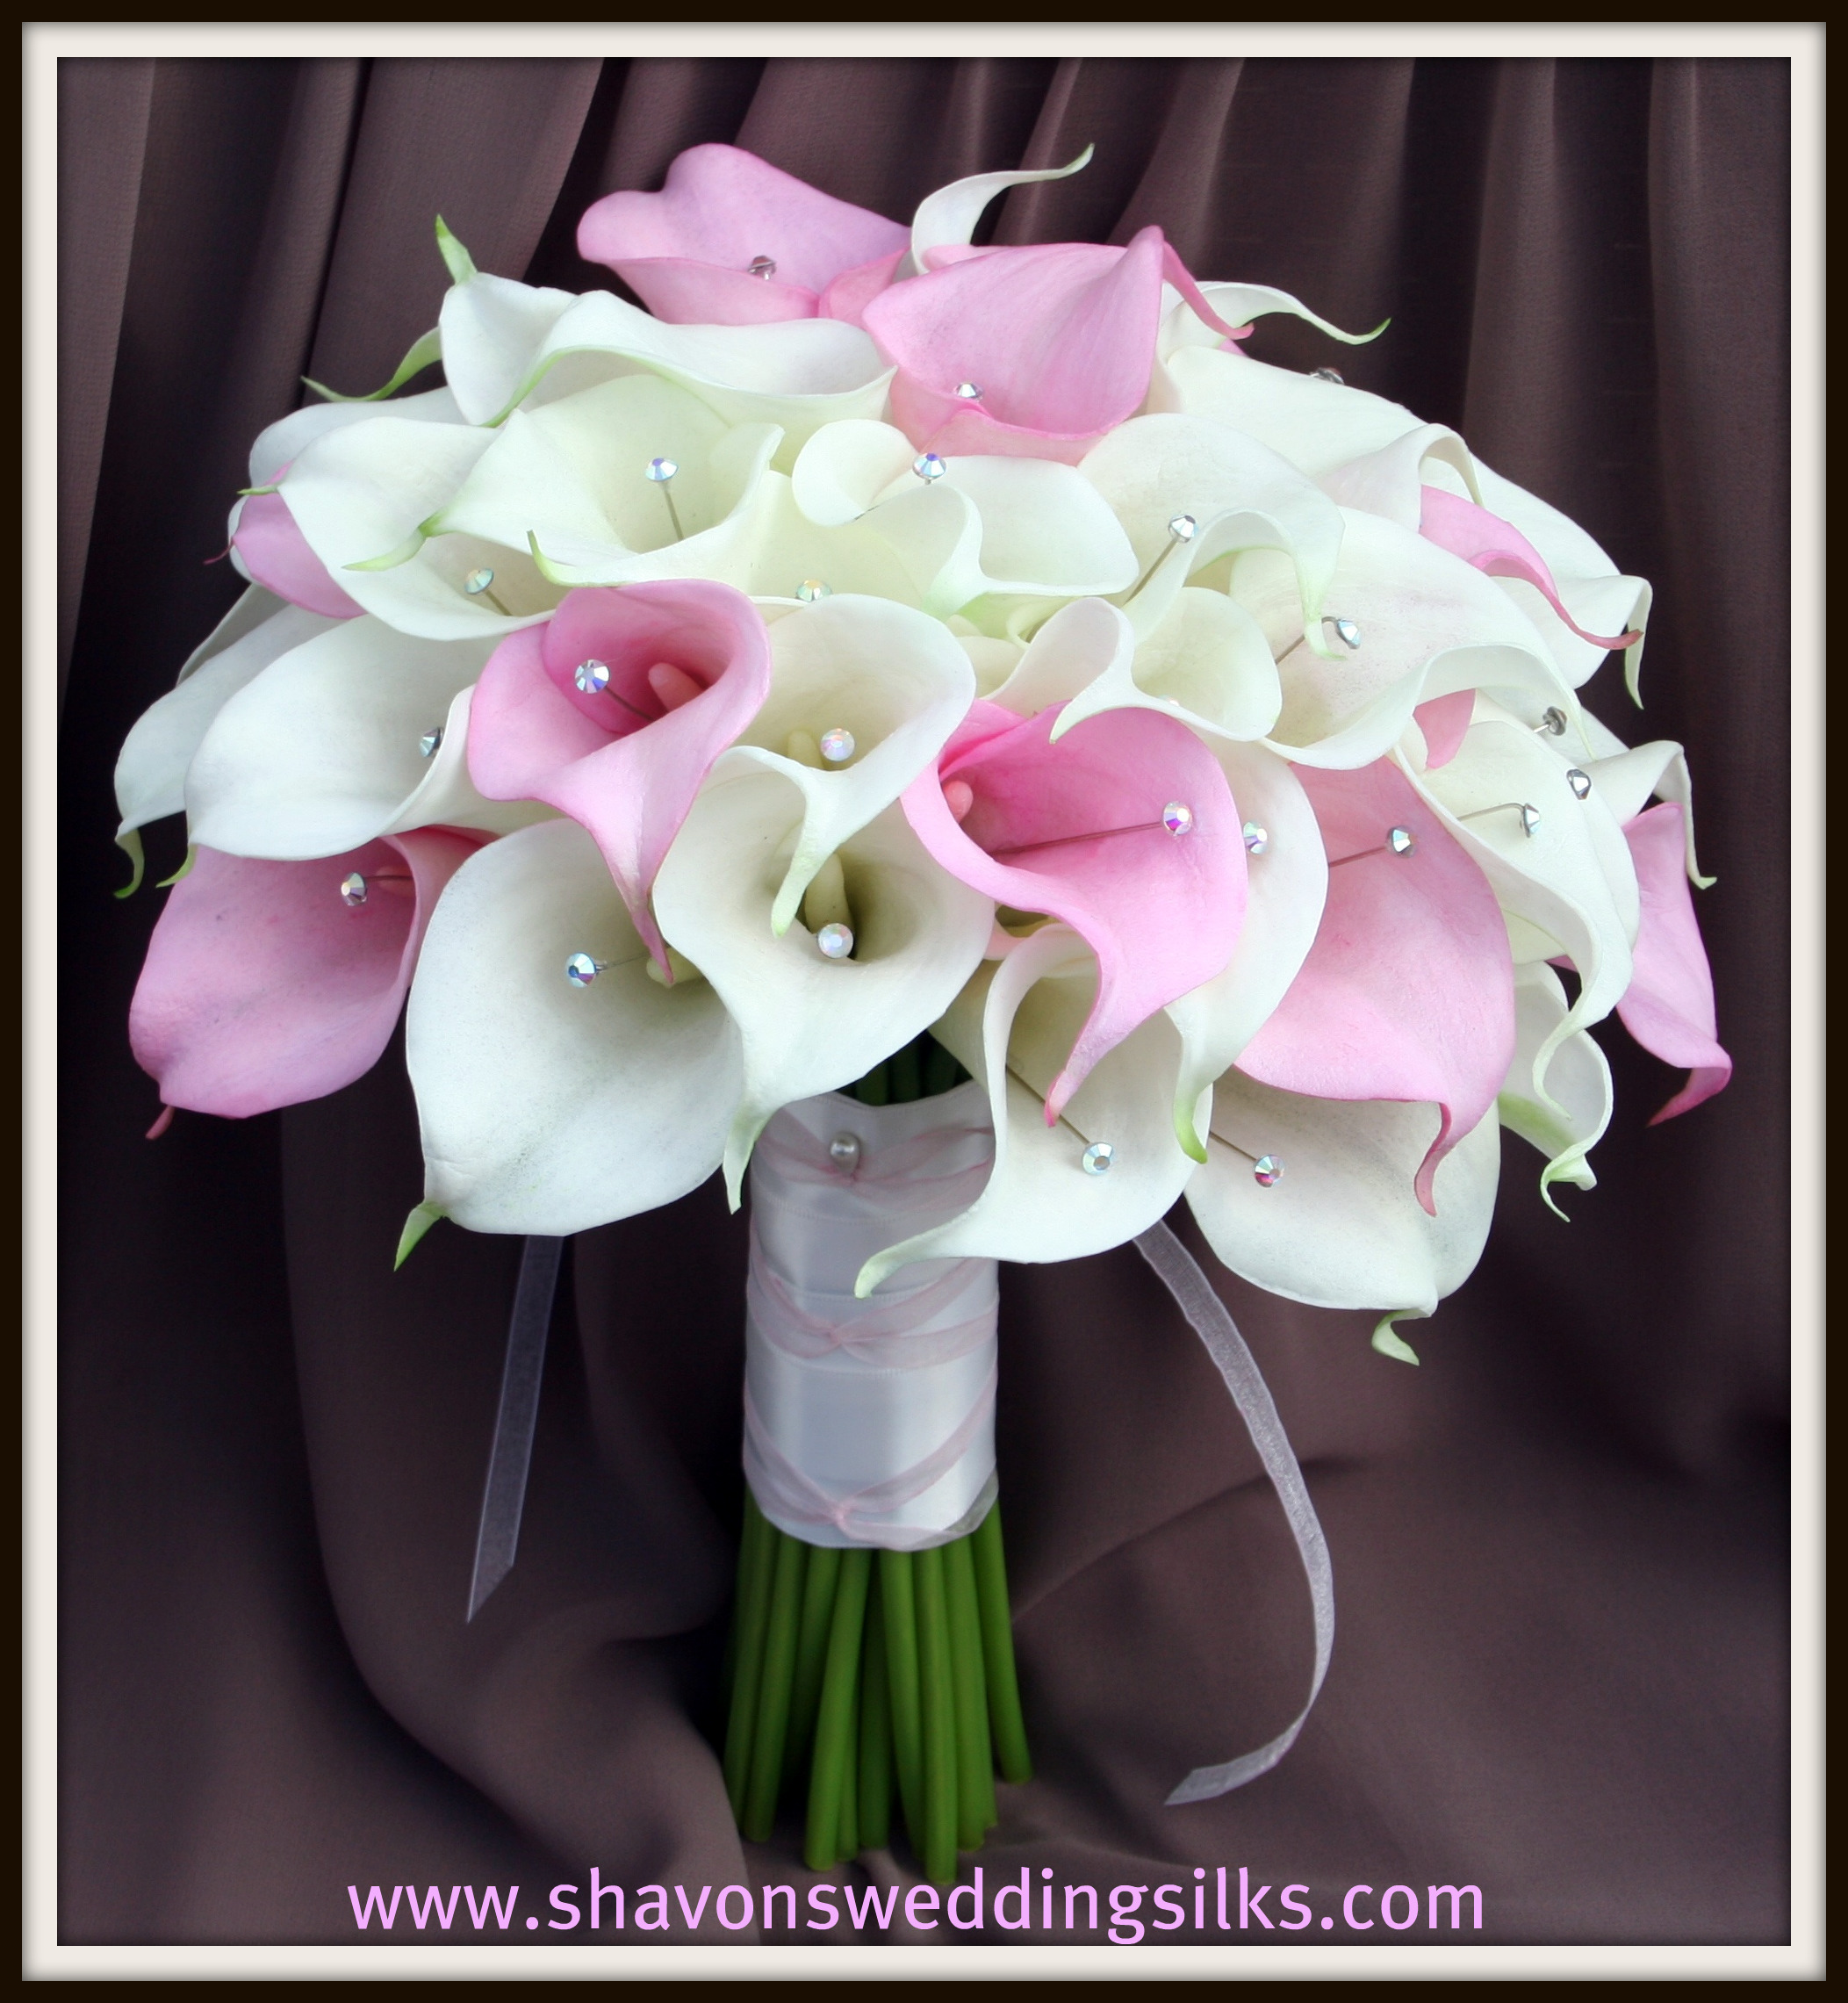 Floramatique mini calla lilies pink white cream swarovski ...